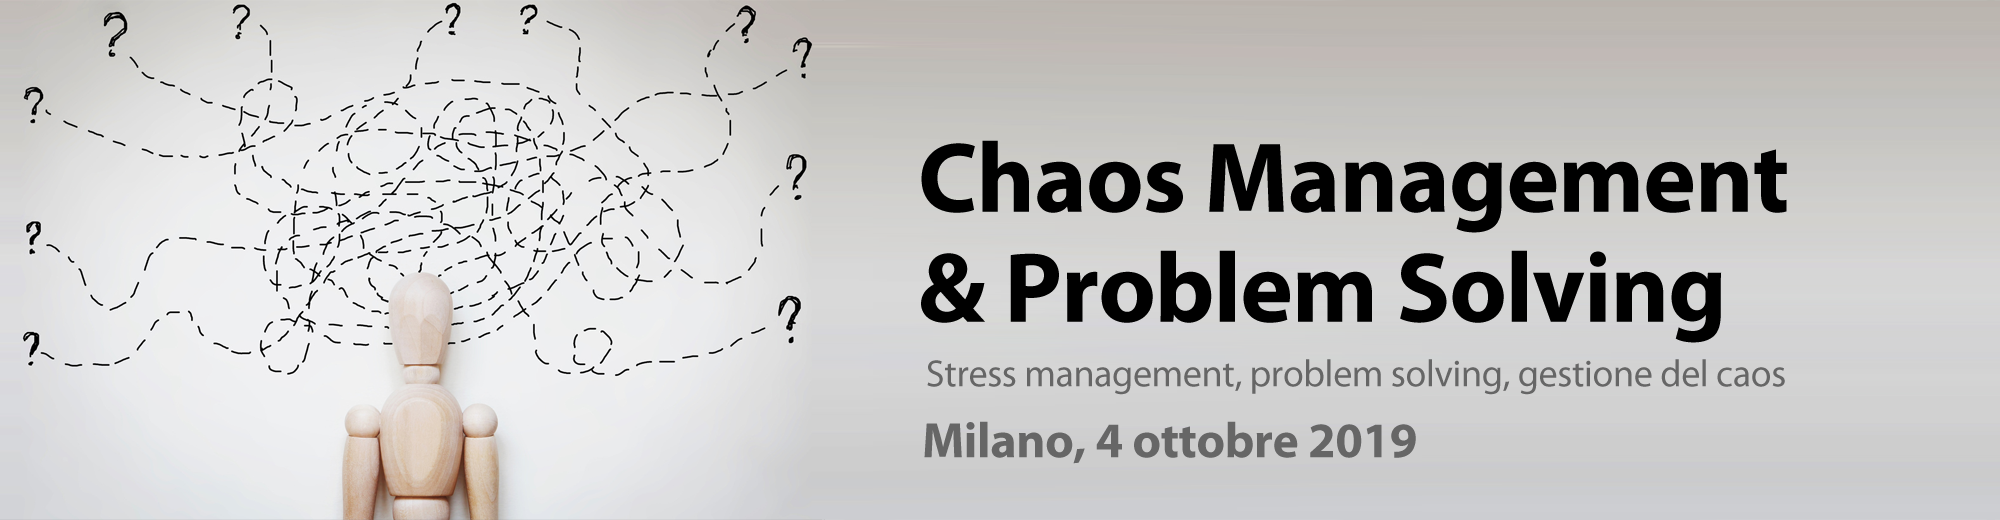 Chaos Management & Problem Solving